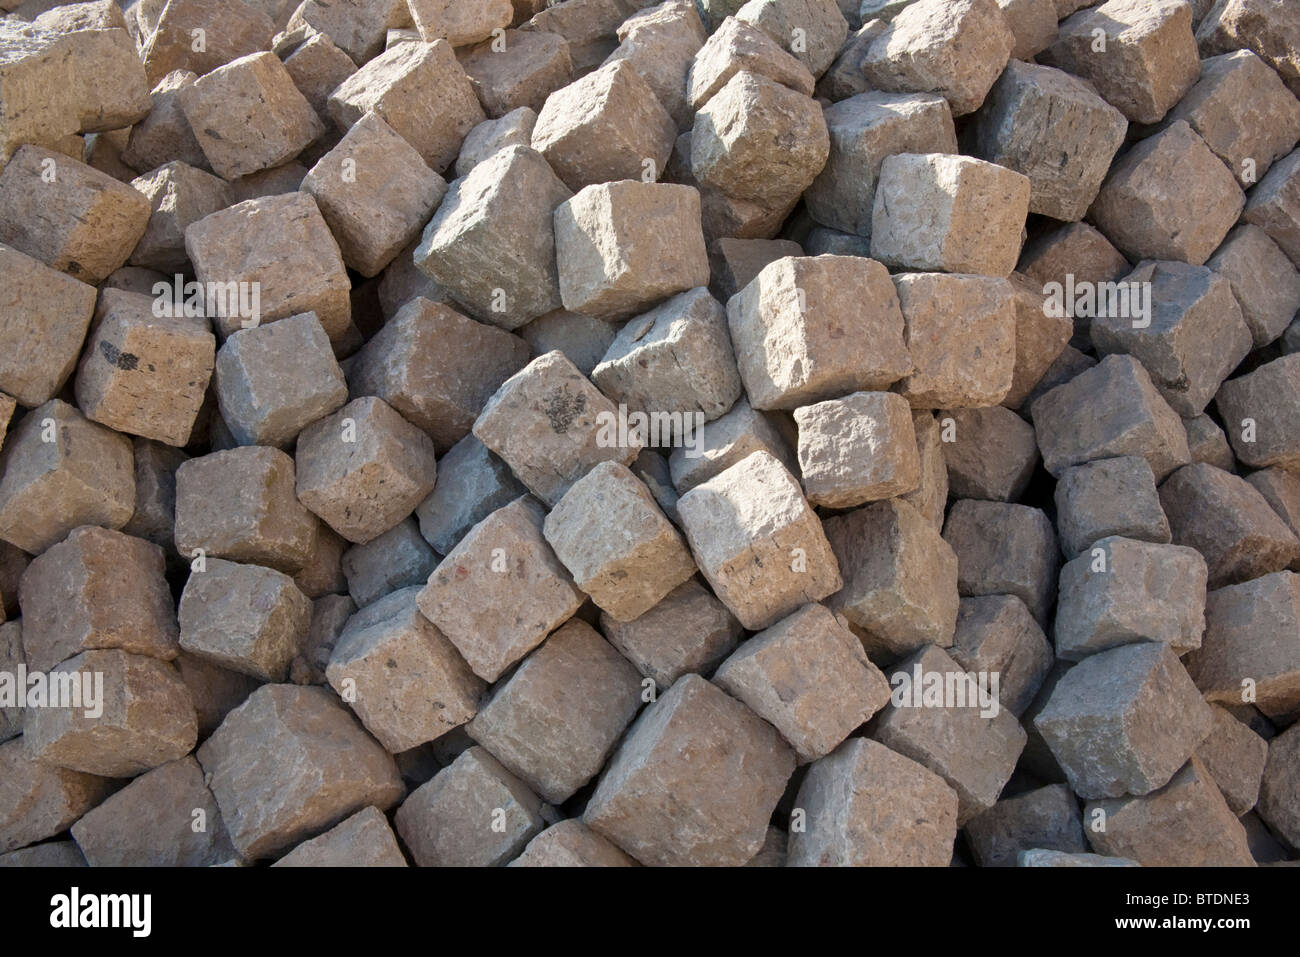 cobblestones stockfotos cobblestones bilder alamy. Black Bedroom Furniture Sets. Home Design Ideas